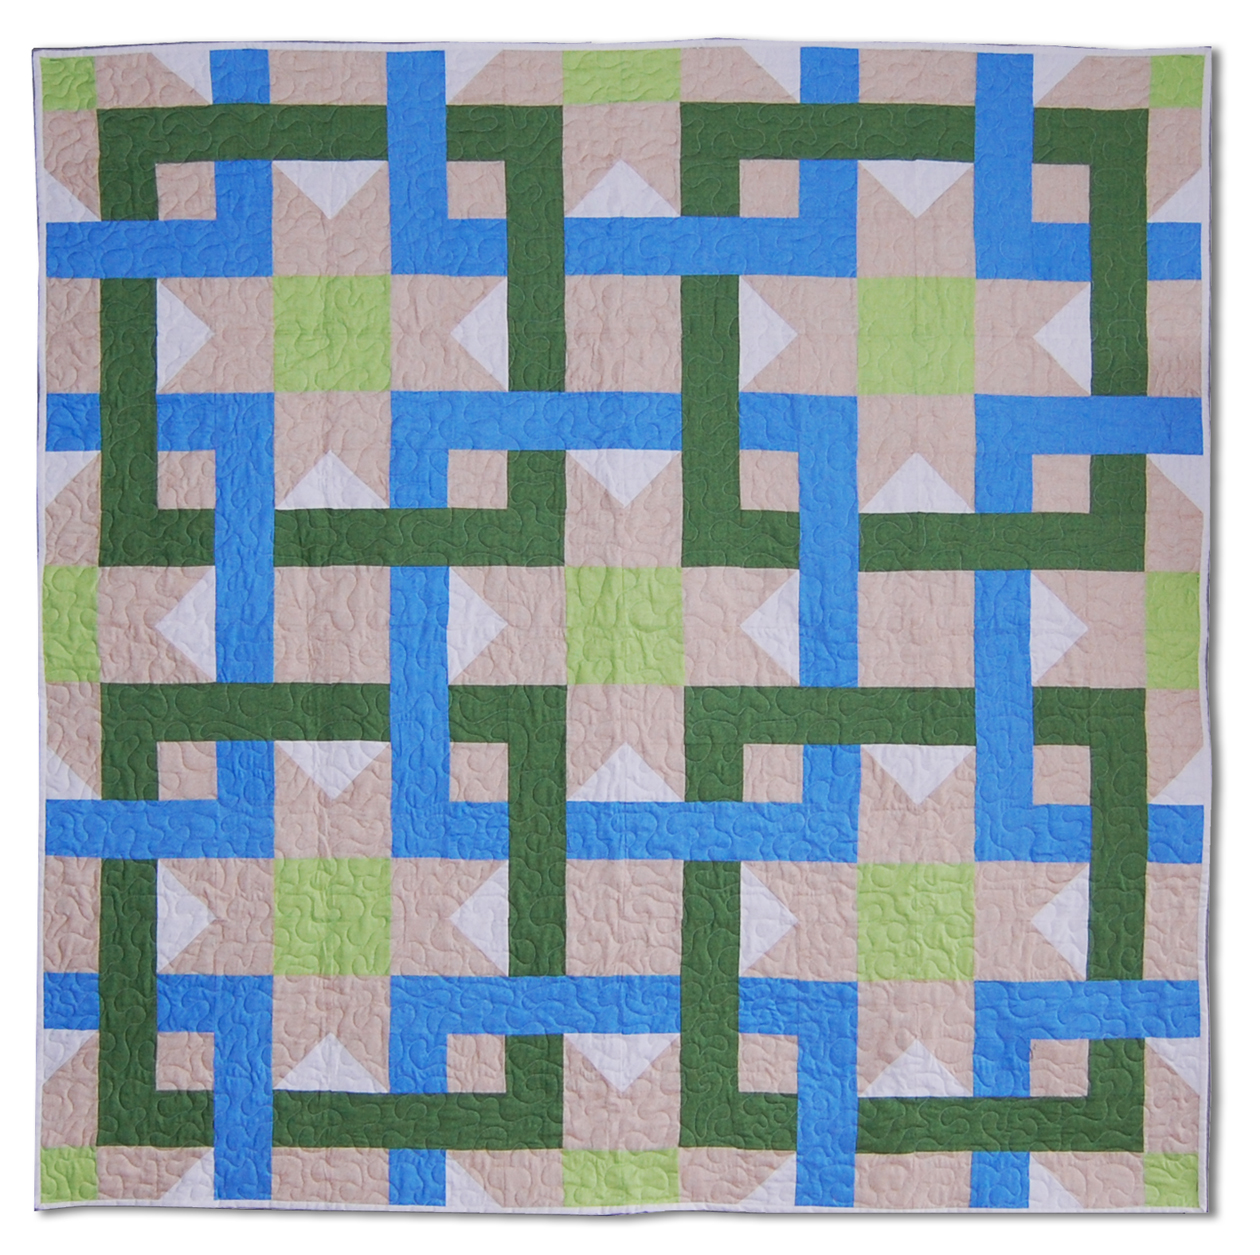 Large Square Block Quilt Patterns : Interlocking Squares Quilt Pattern ReannaLily Designs